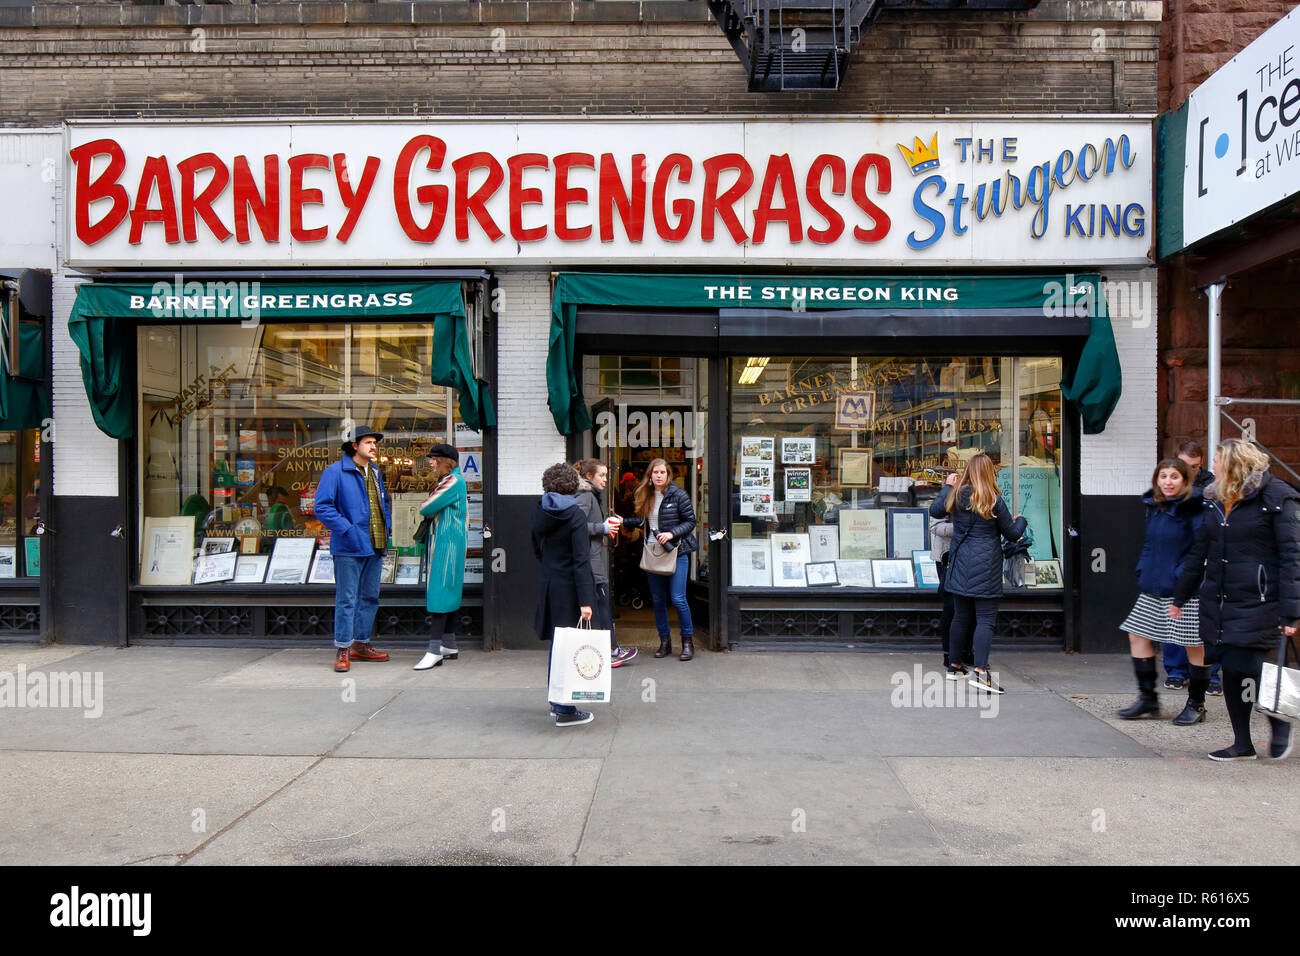 Barney Greengrass, 541 Amsterdam Ave, New York, NY Stock Photo